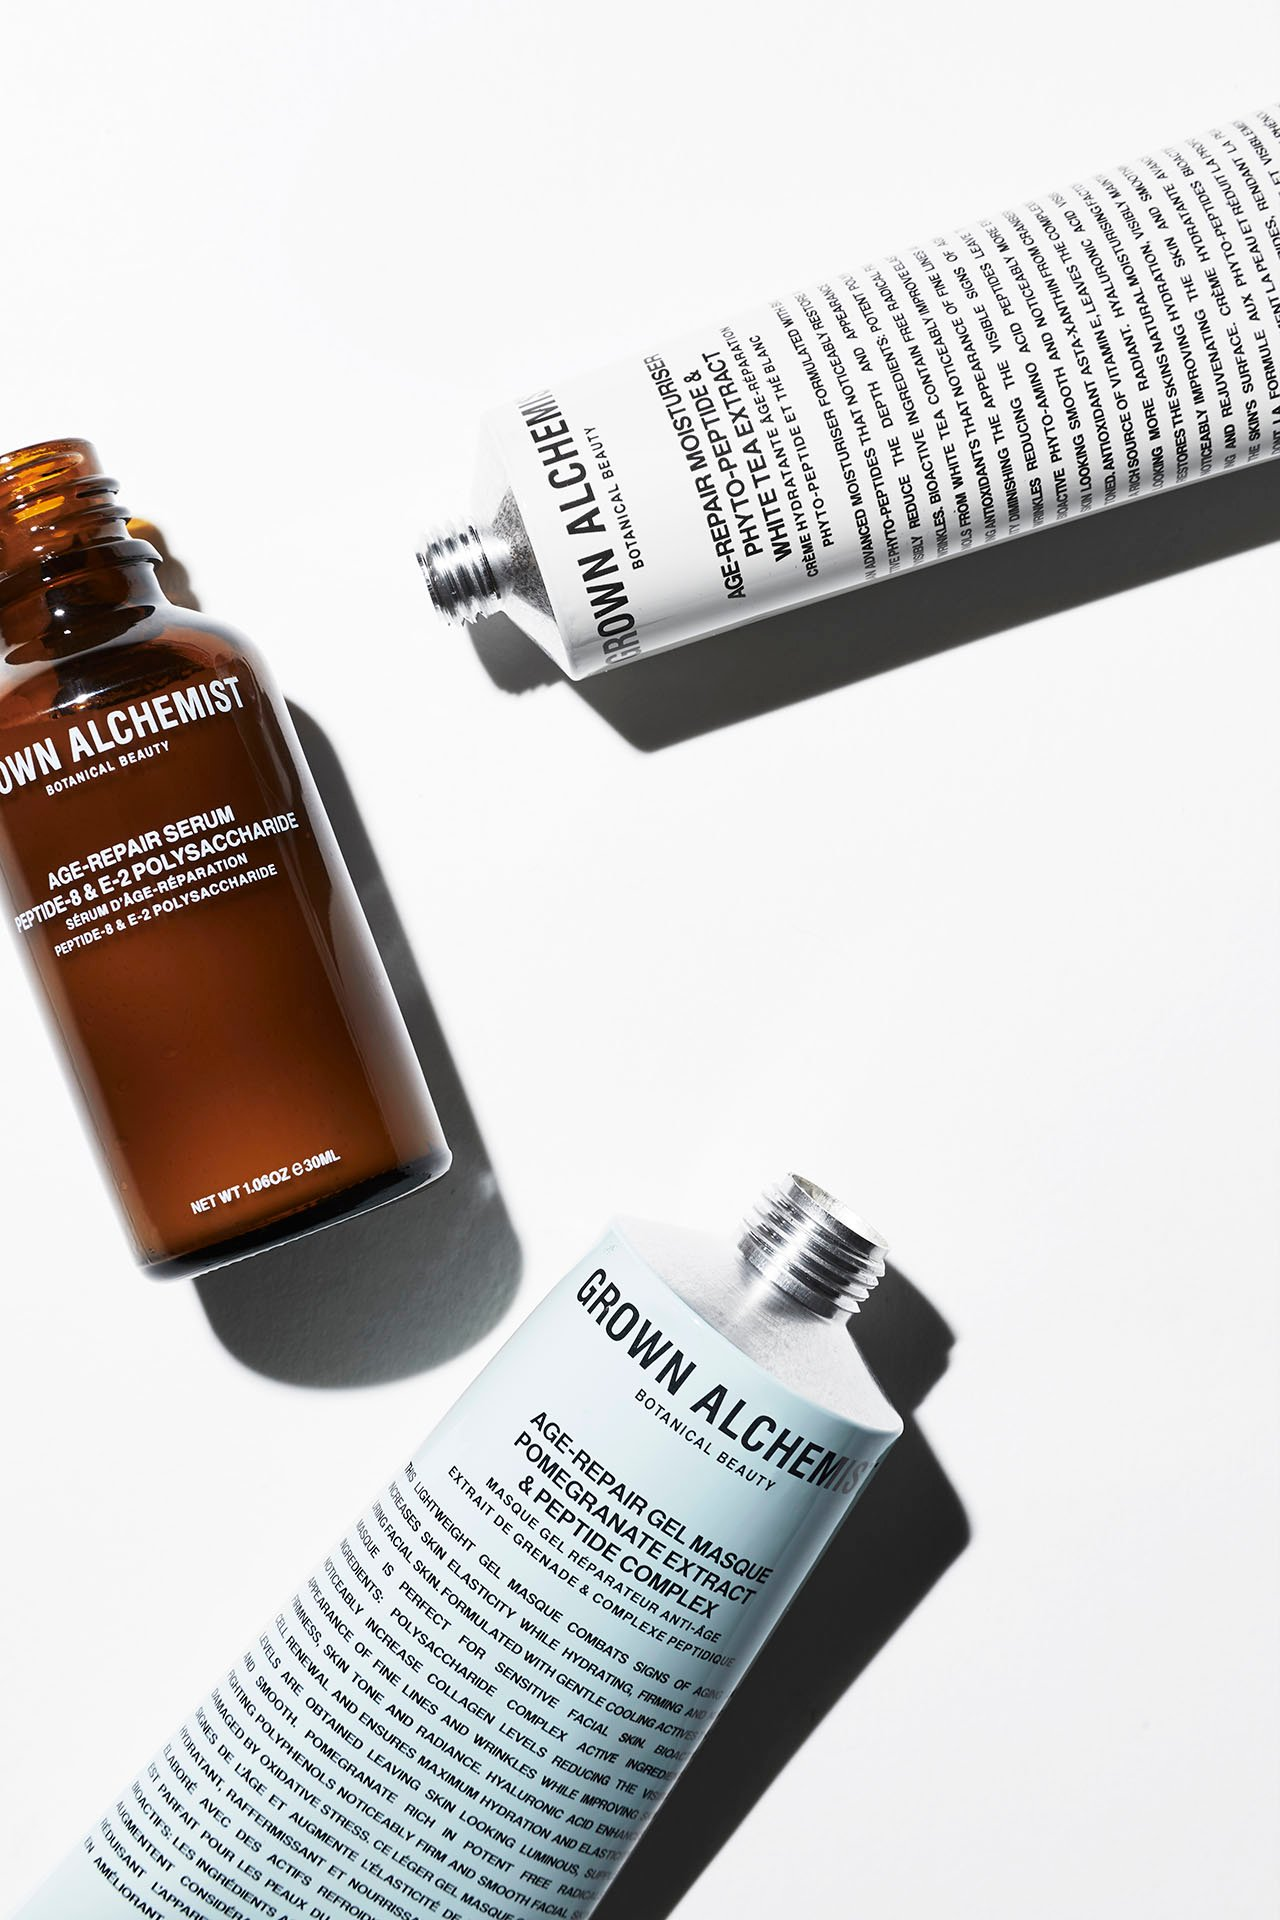 Age-Repair Moisturiser (Phyto-Peptide, White Tea Extract),  Age-Repair Gel Masque (Pomegranate Extract, Peptide Complex) & Age-Repair Serum (Peptide-8, E-2 Polysaccharide).Photo © GROWN ALCHEMIST.